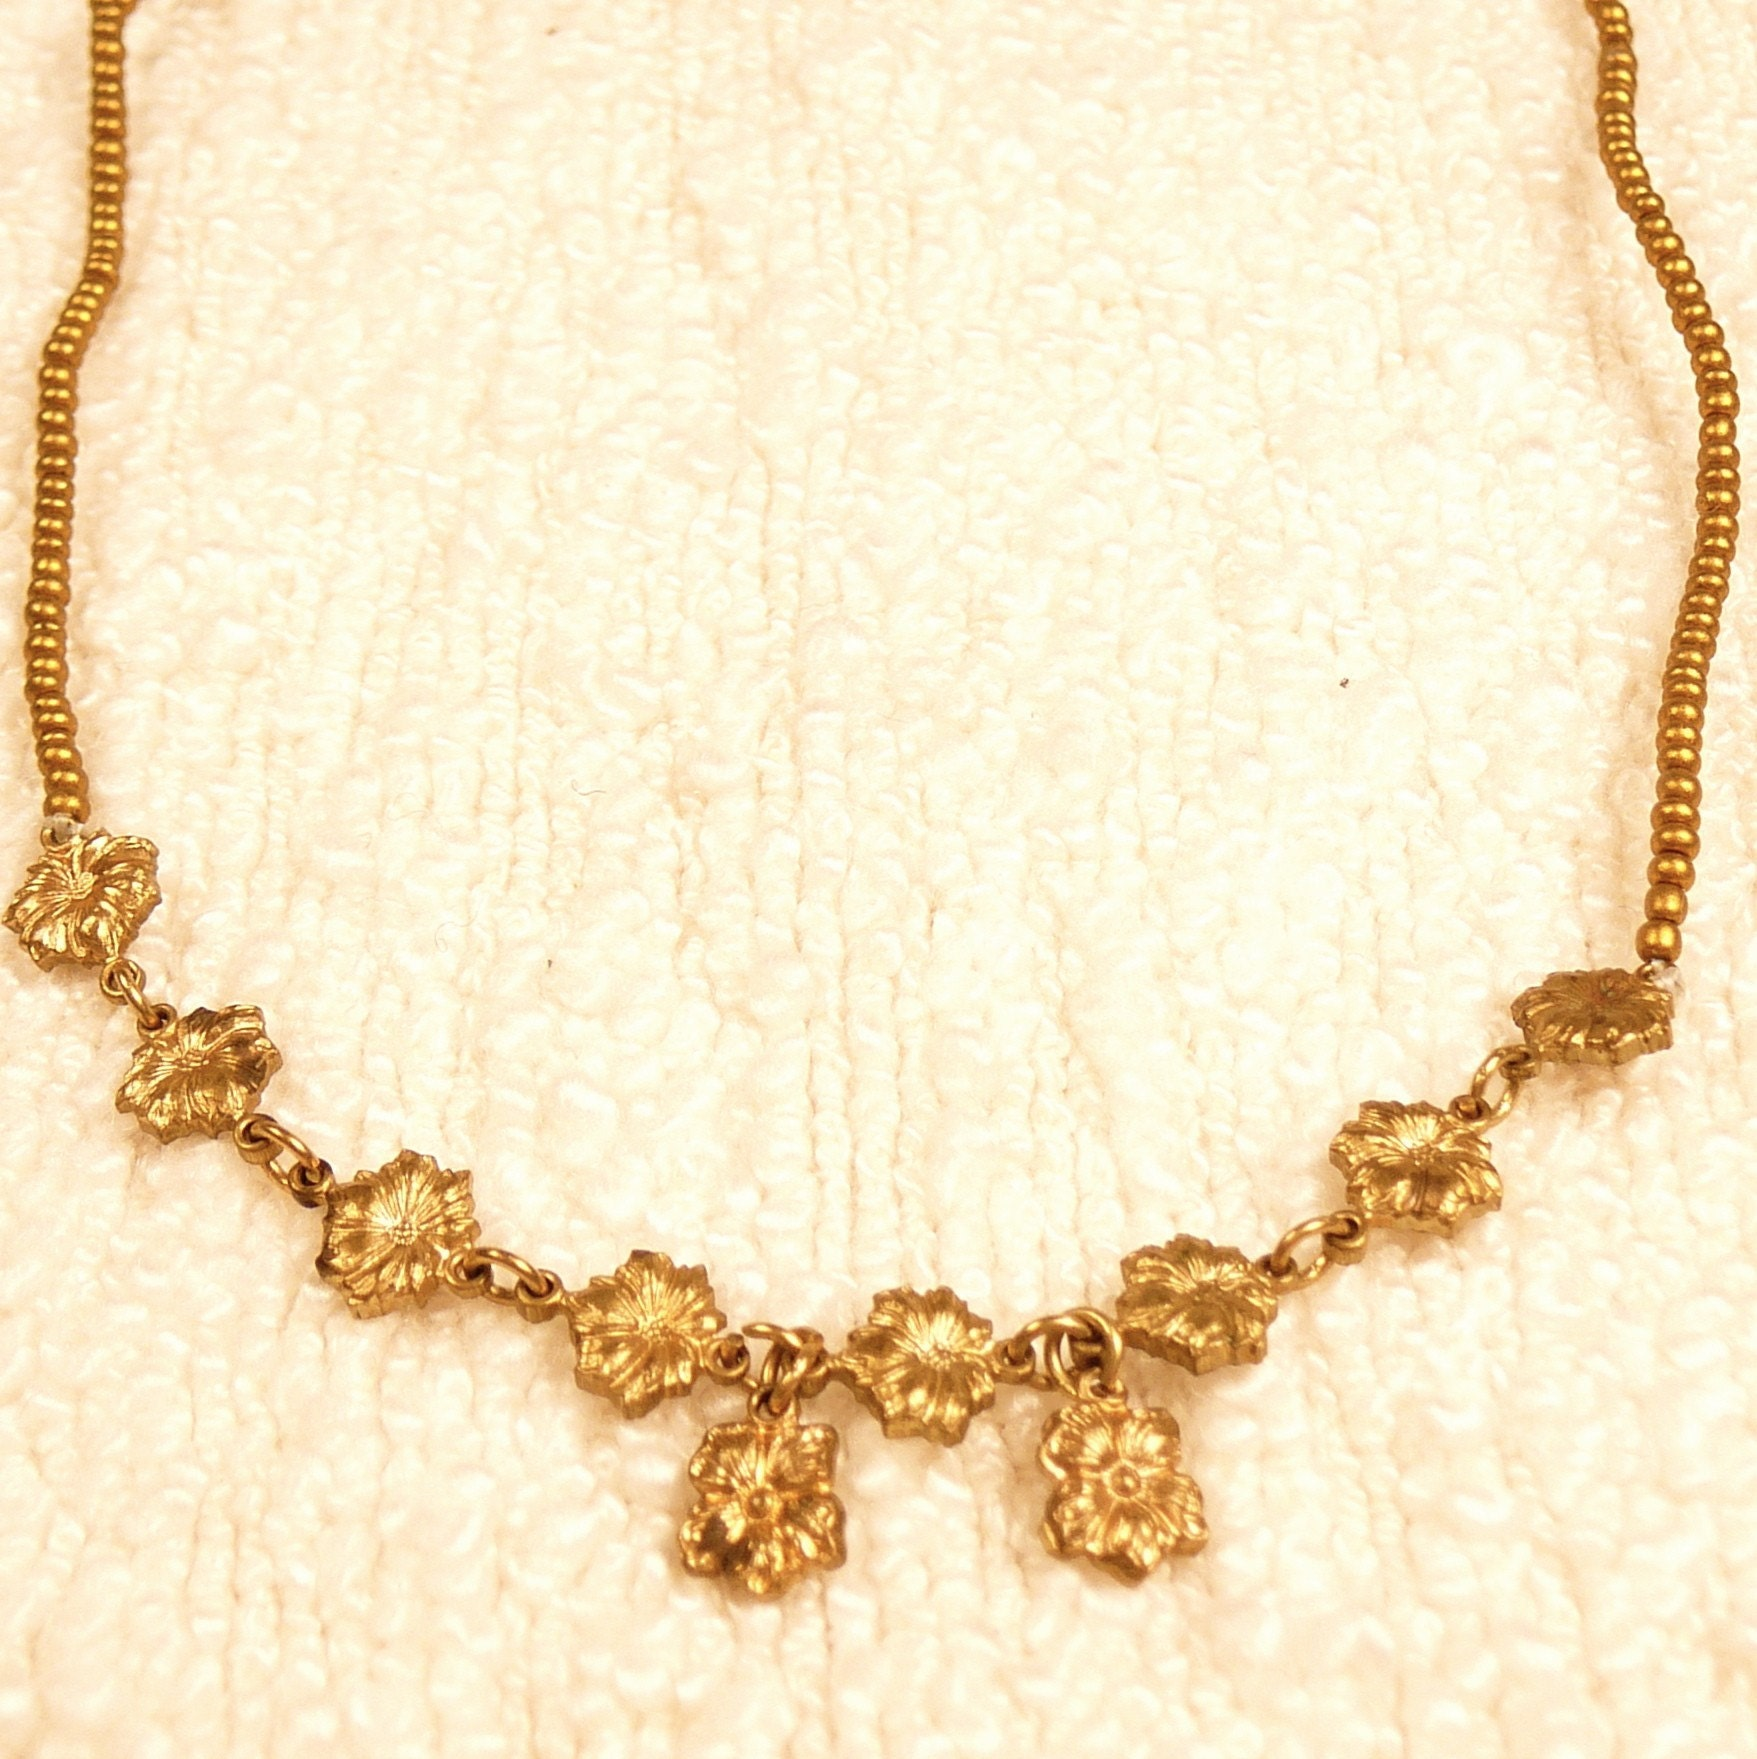 Etsy :: JonesyAndCrane :: Golden Rowsies of Posies Vintage Gold Necklace - One of a Kind